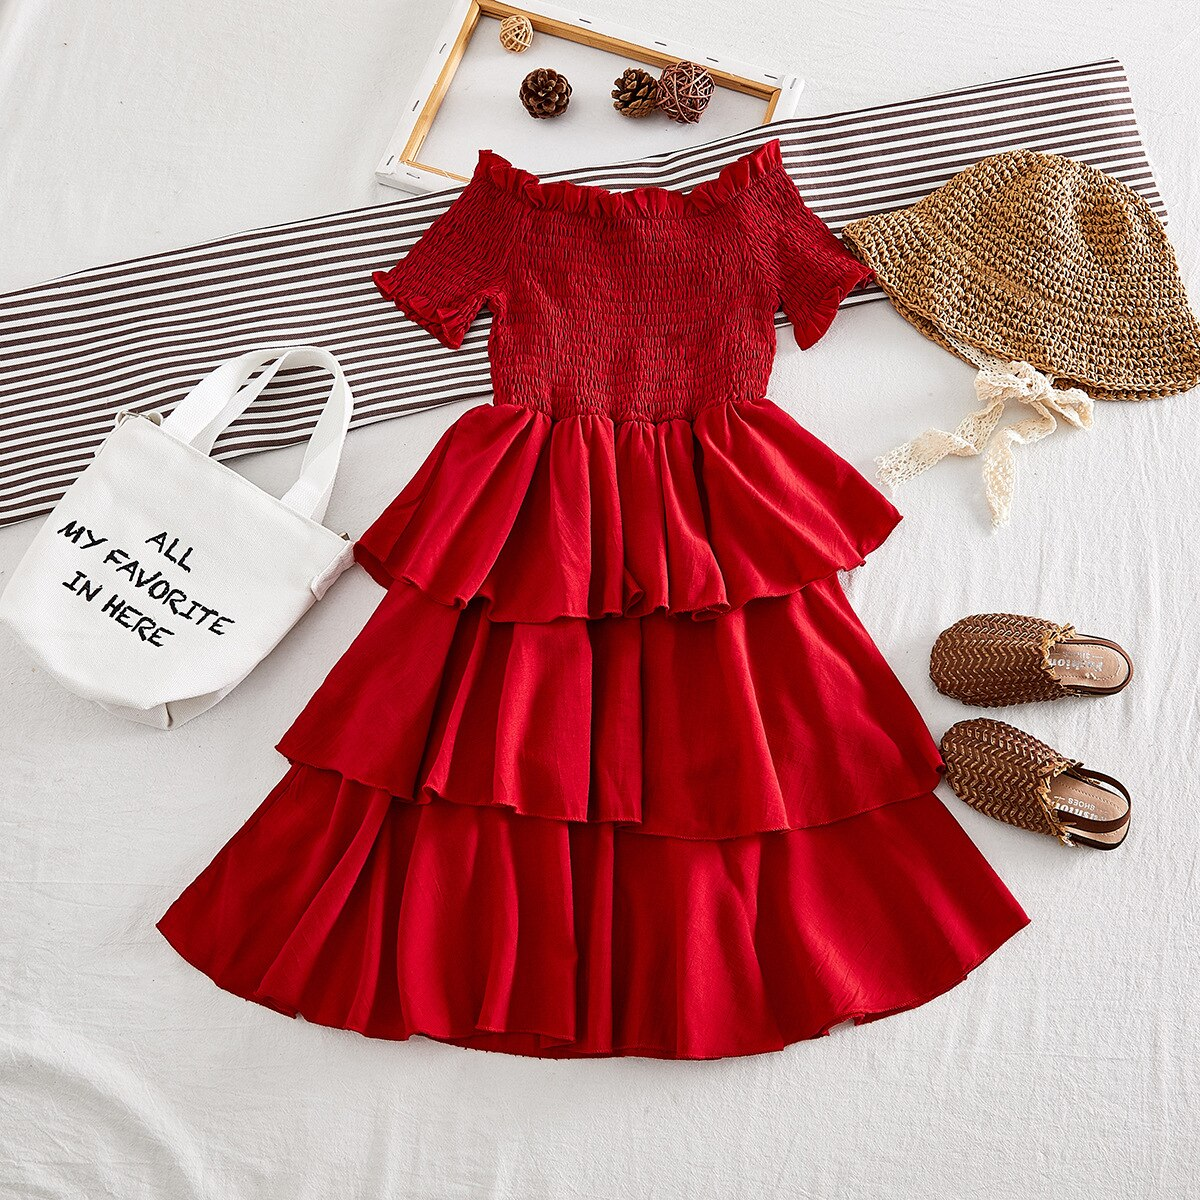 Girls Dress Fashion Red Cake Dress Baby Girl Princess Party Clothes Dress Girl Clothing Elegant High Quality Christmas Dress